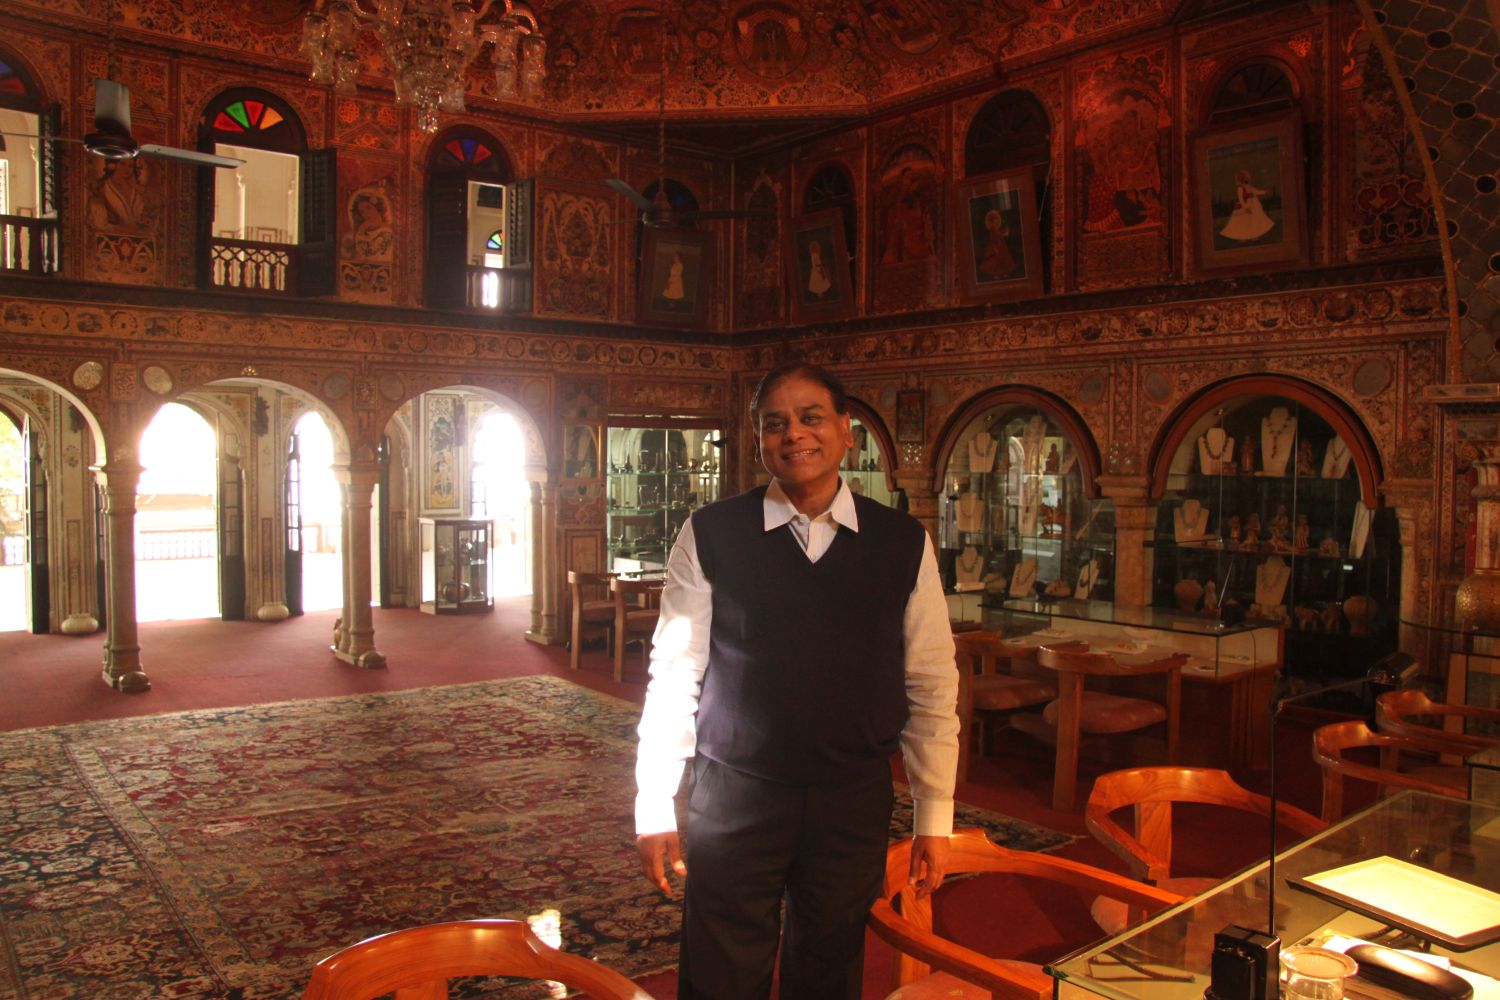 Jaipur | Royal Gems and Arts 7 | Haveli (noble house ) of the 17th century | Jewelery and antique | Jeweler of royal Rajasthan families | Santi Choudary owner | Photo sandrine cohen